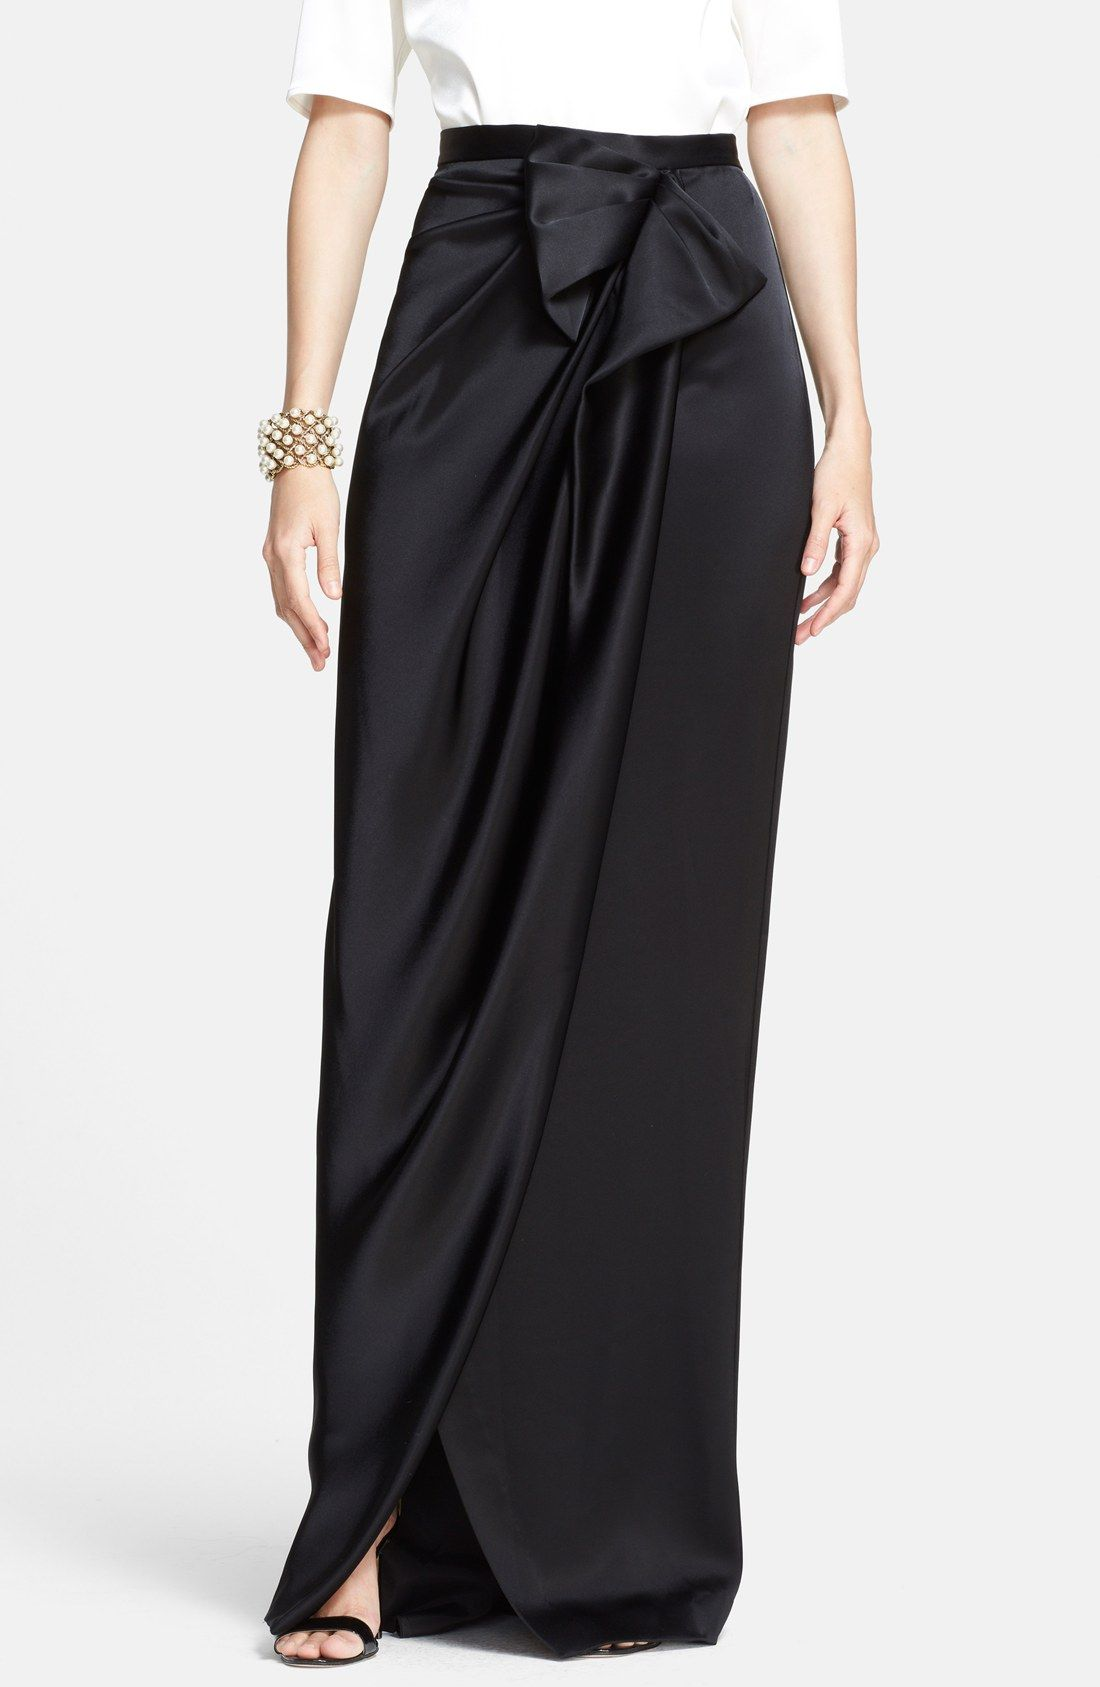 543a9ceccc83 St. John Collection Draped Liquid Satin Evening Skirt